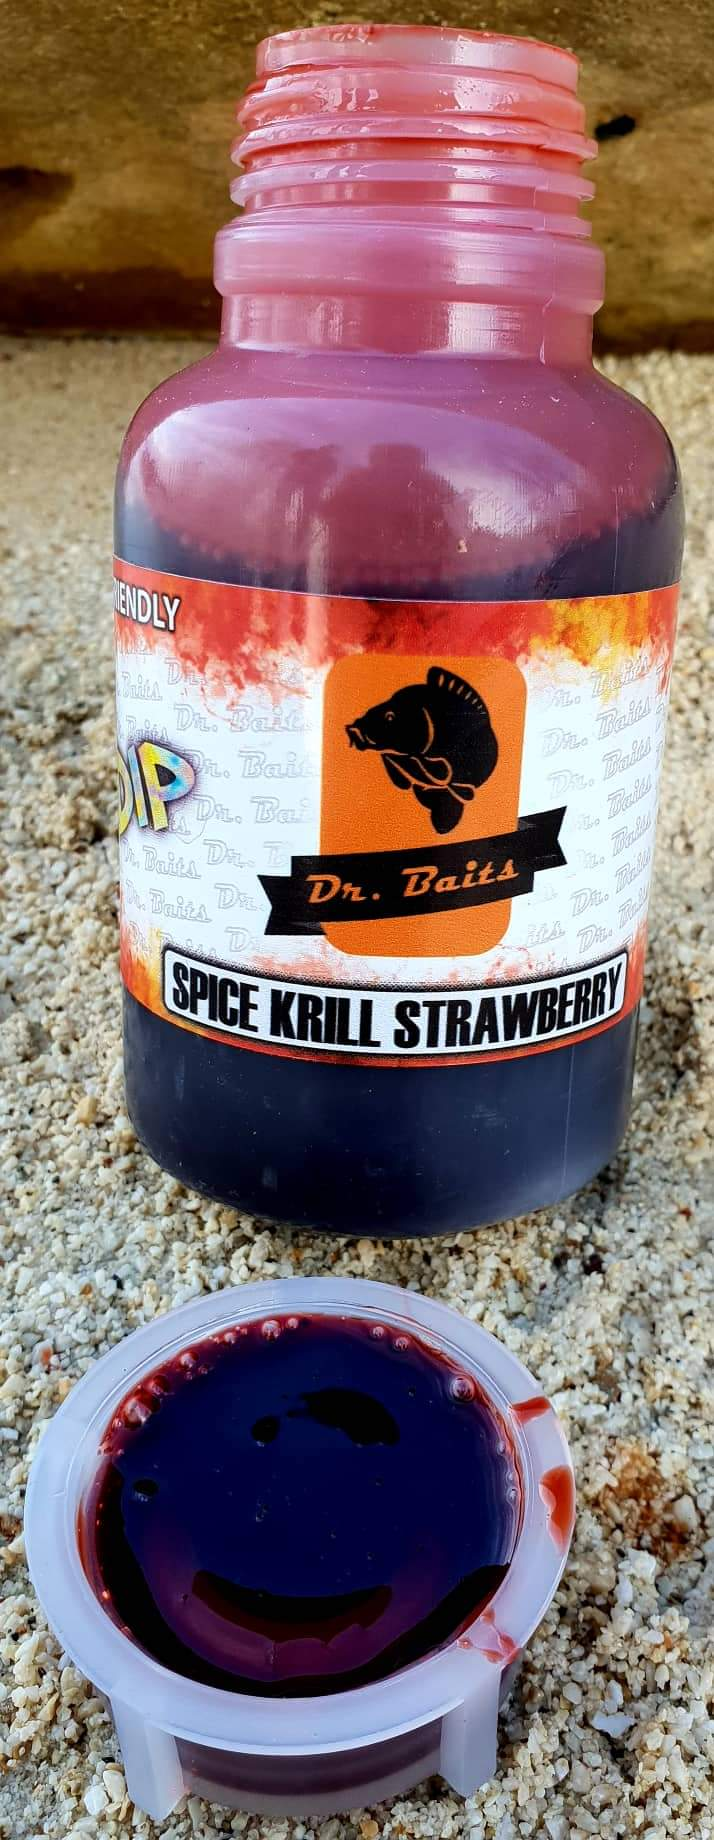 Spice krill strawberry DIP